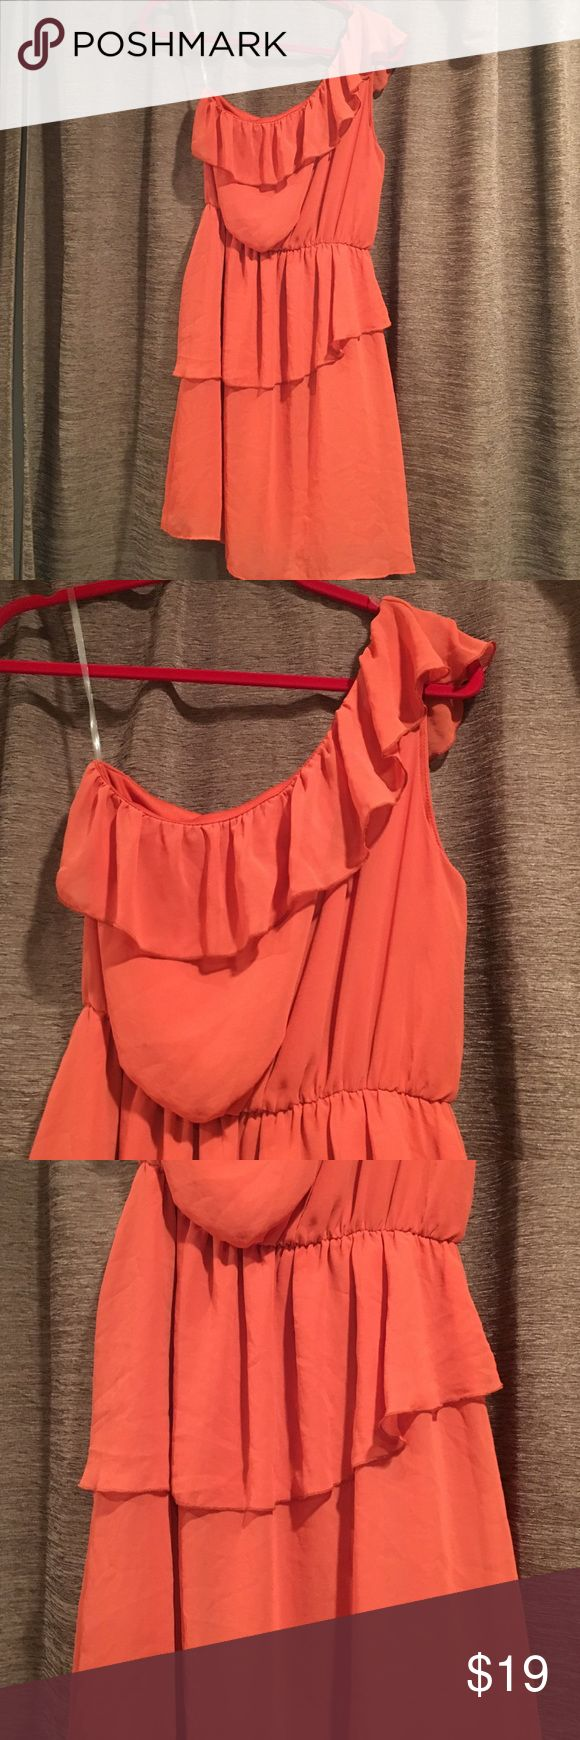 Francesca's Collections Orange ruffle dress Francesca's Collections Orange ruffle dress one shoulder. Never worn. No tags.✨open to offers ✨ Francesca's Collections Dresses Mini